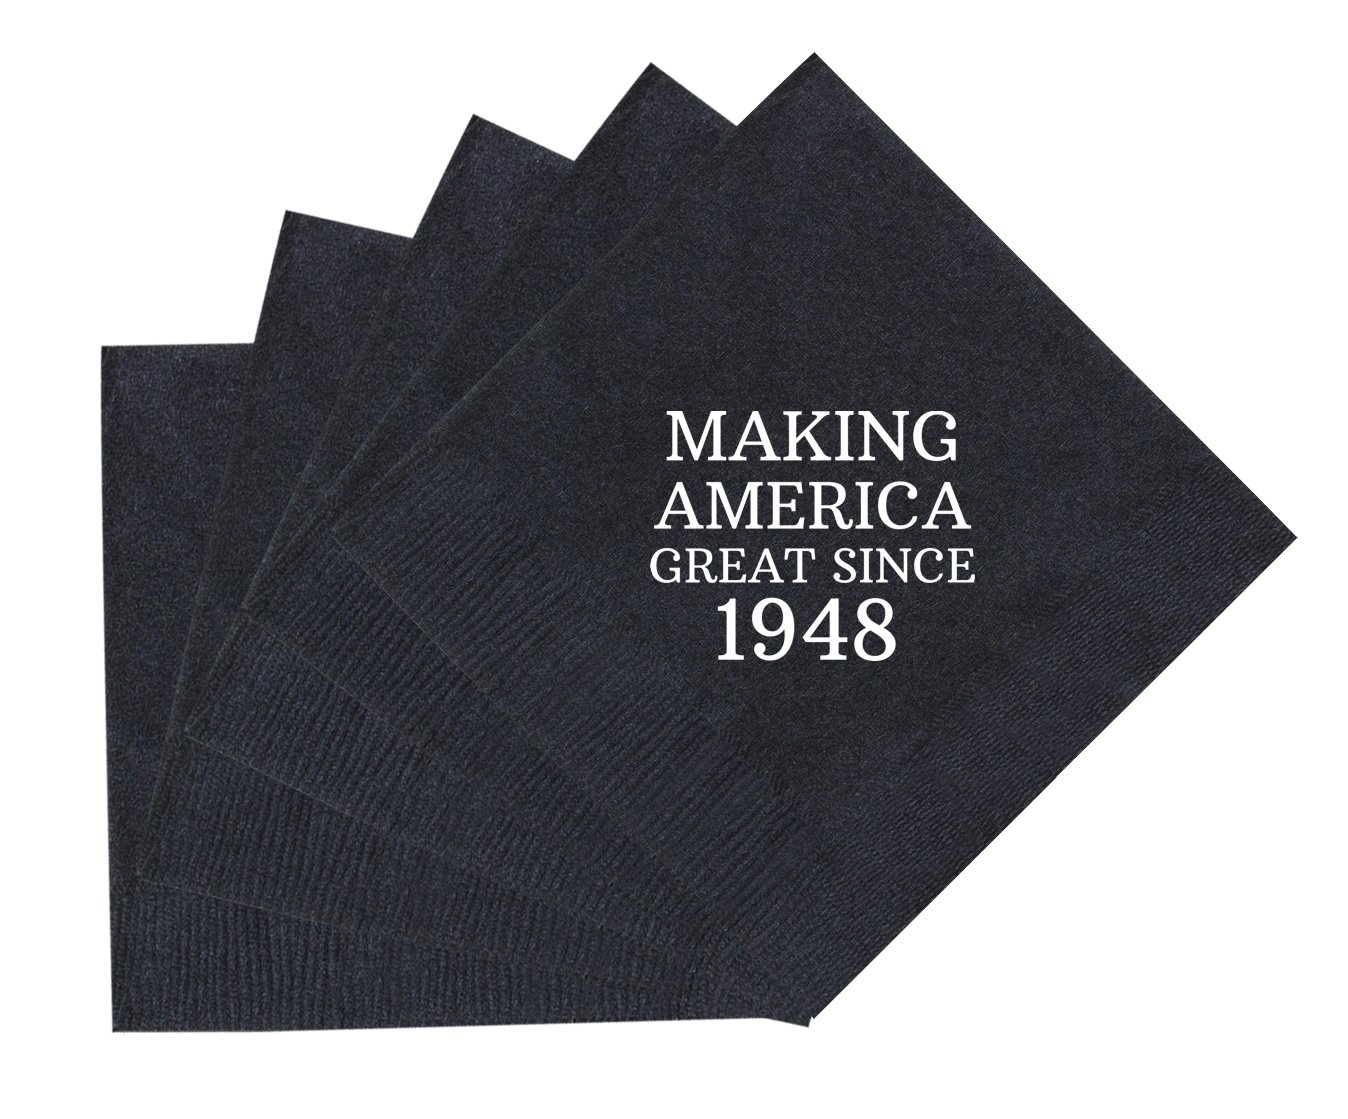 70th Birthday Gifts Making America Great Since 1948 Party Supplies 50 Pack 5x5 Napkins Cocktail Black A P IM NP 0011 Blk